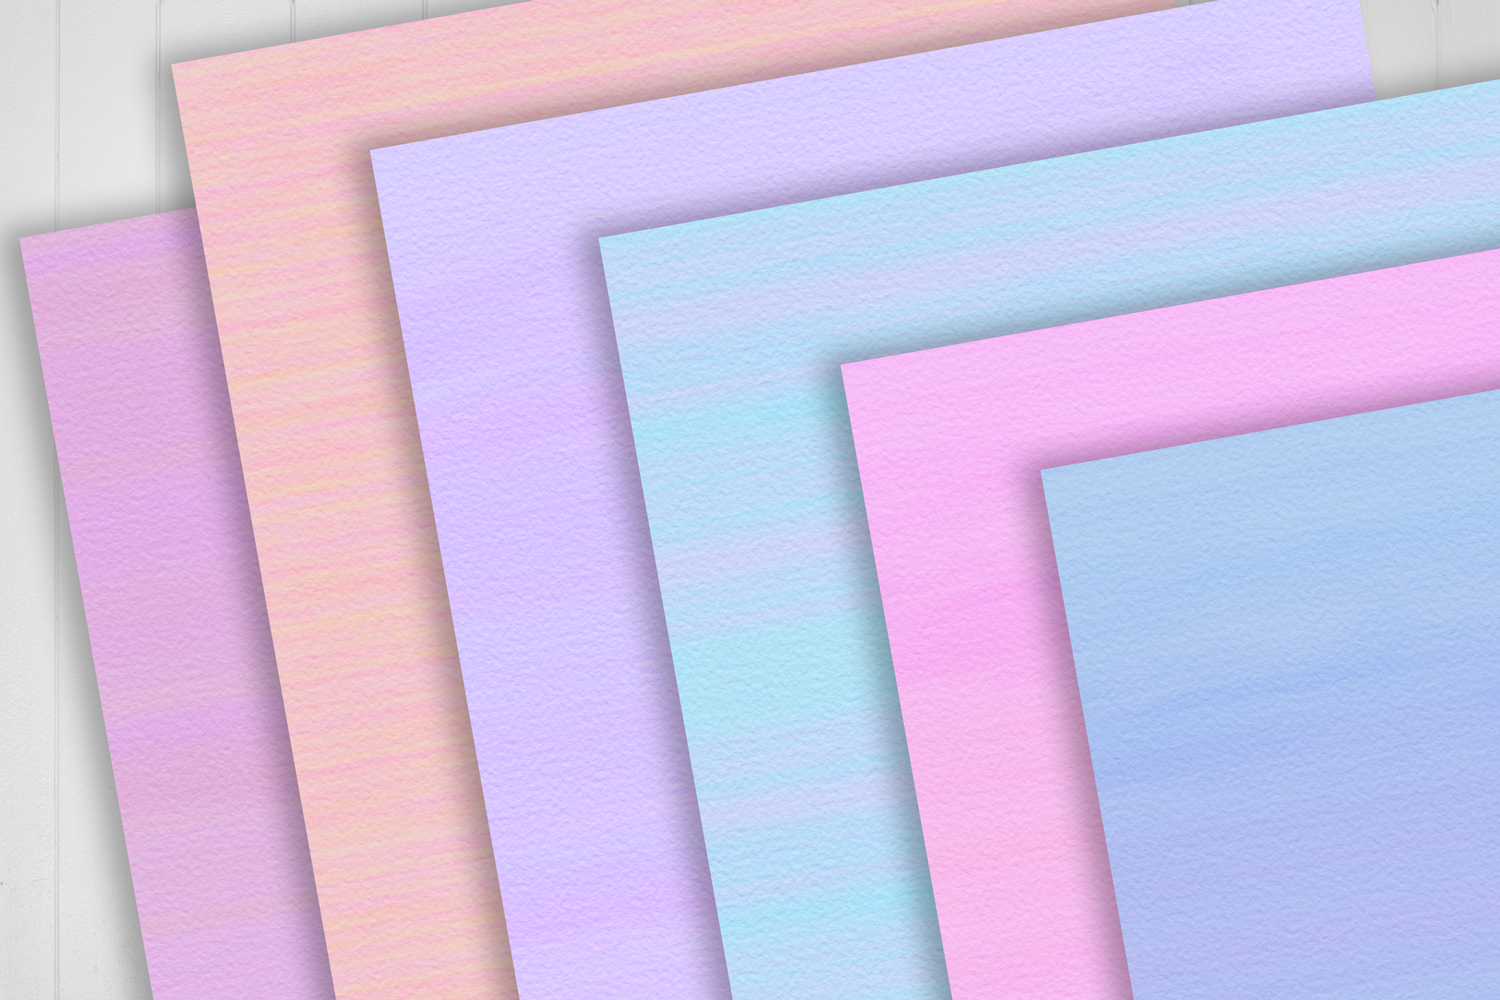 Pastel Backgrounds example image 2